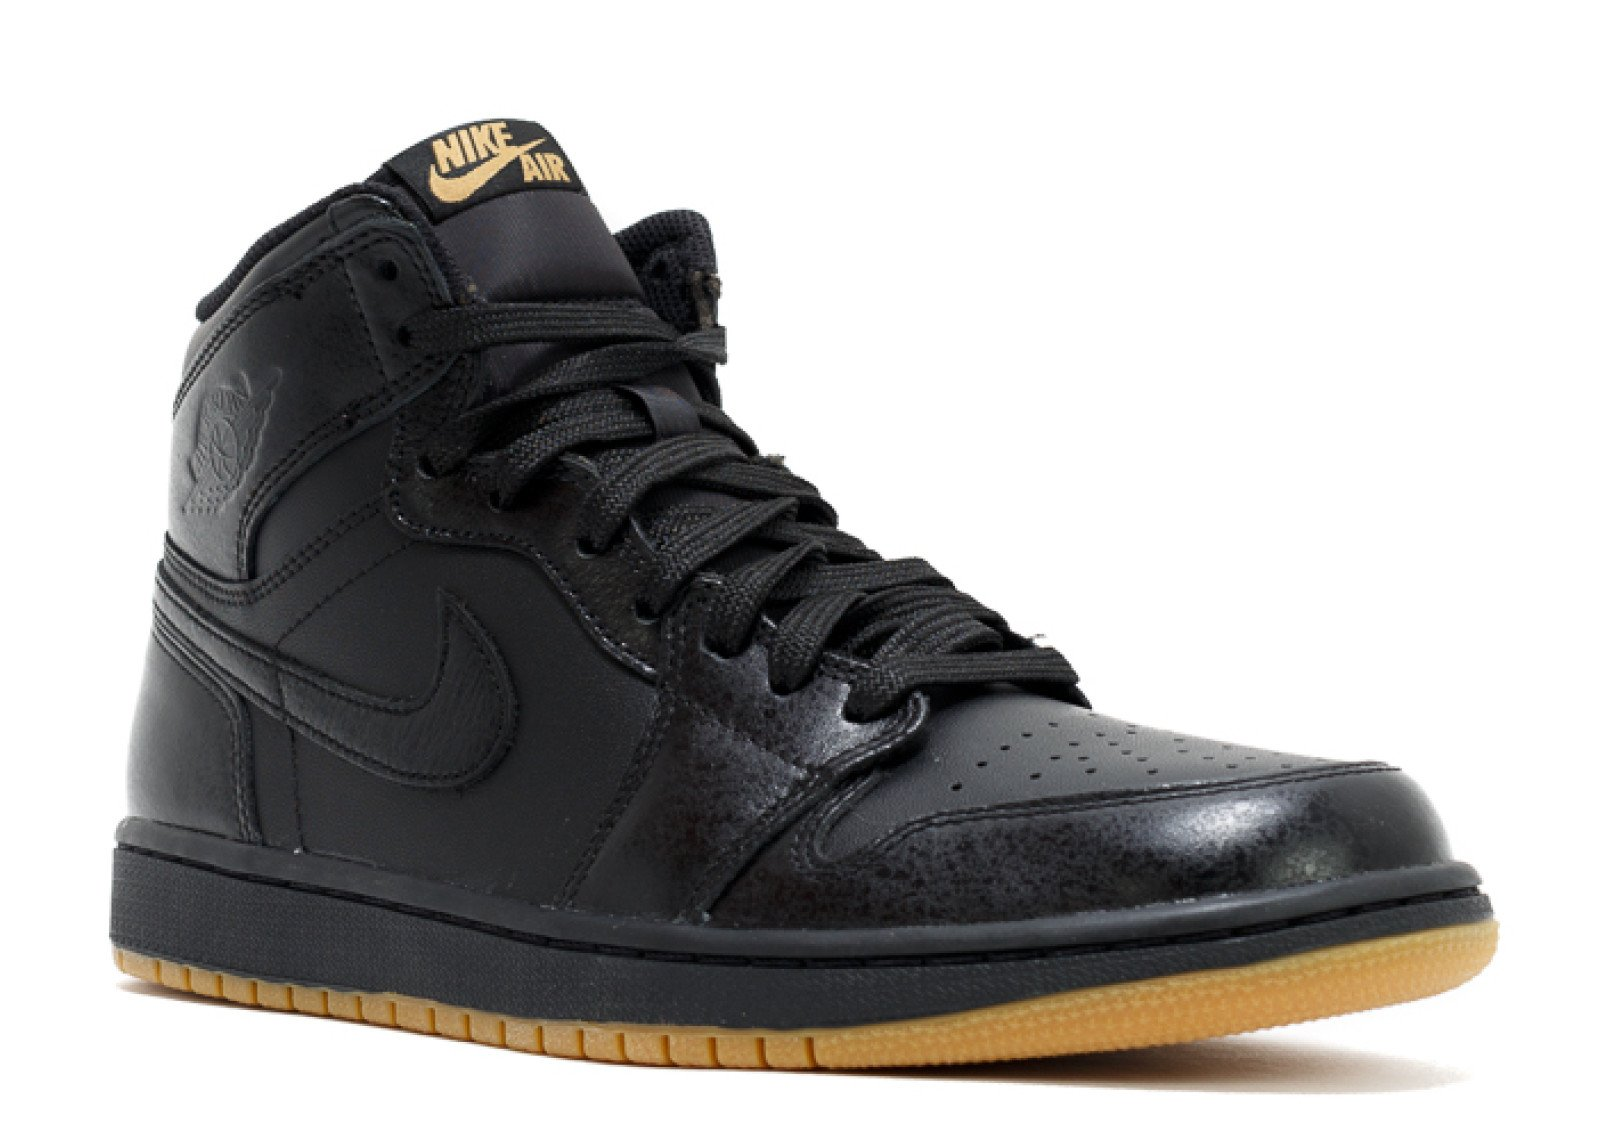 NIKE Air Jordan 1 Retro High OG (Black/Black-Gum Light Brown) (11.5)